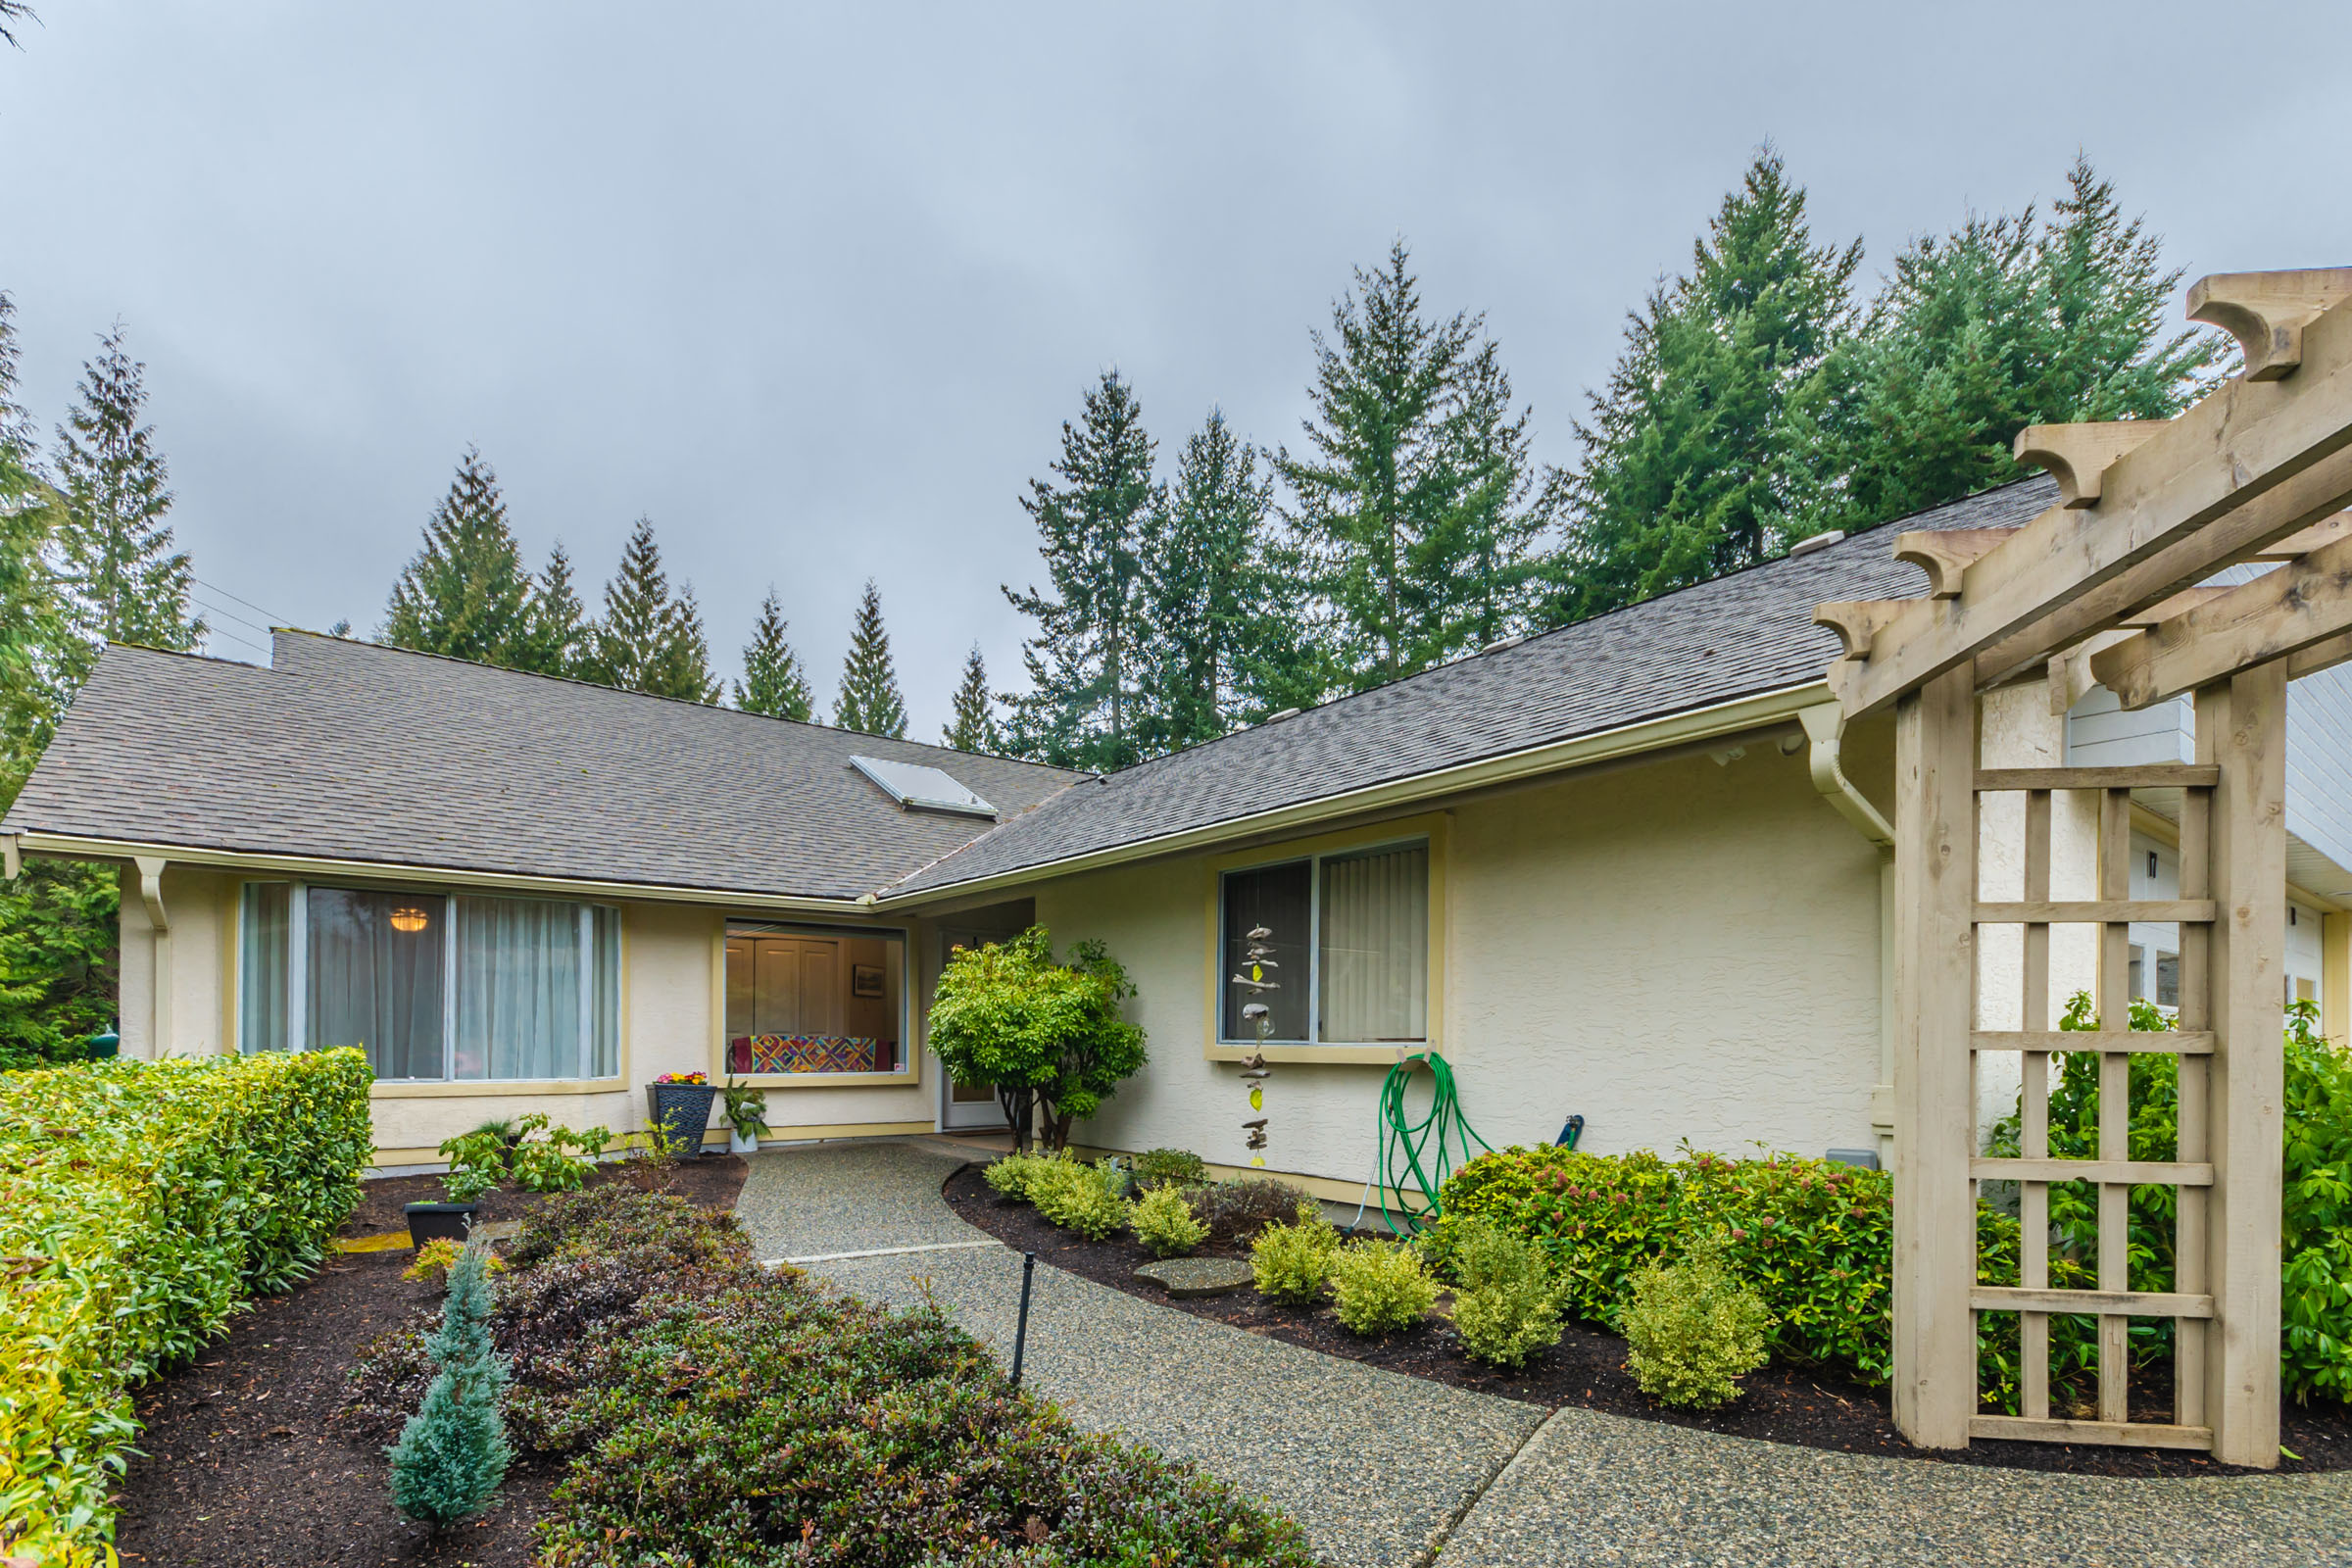 SOLD - #17-885 Berwick S Road, Qualicum Beach, British Columbia